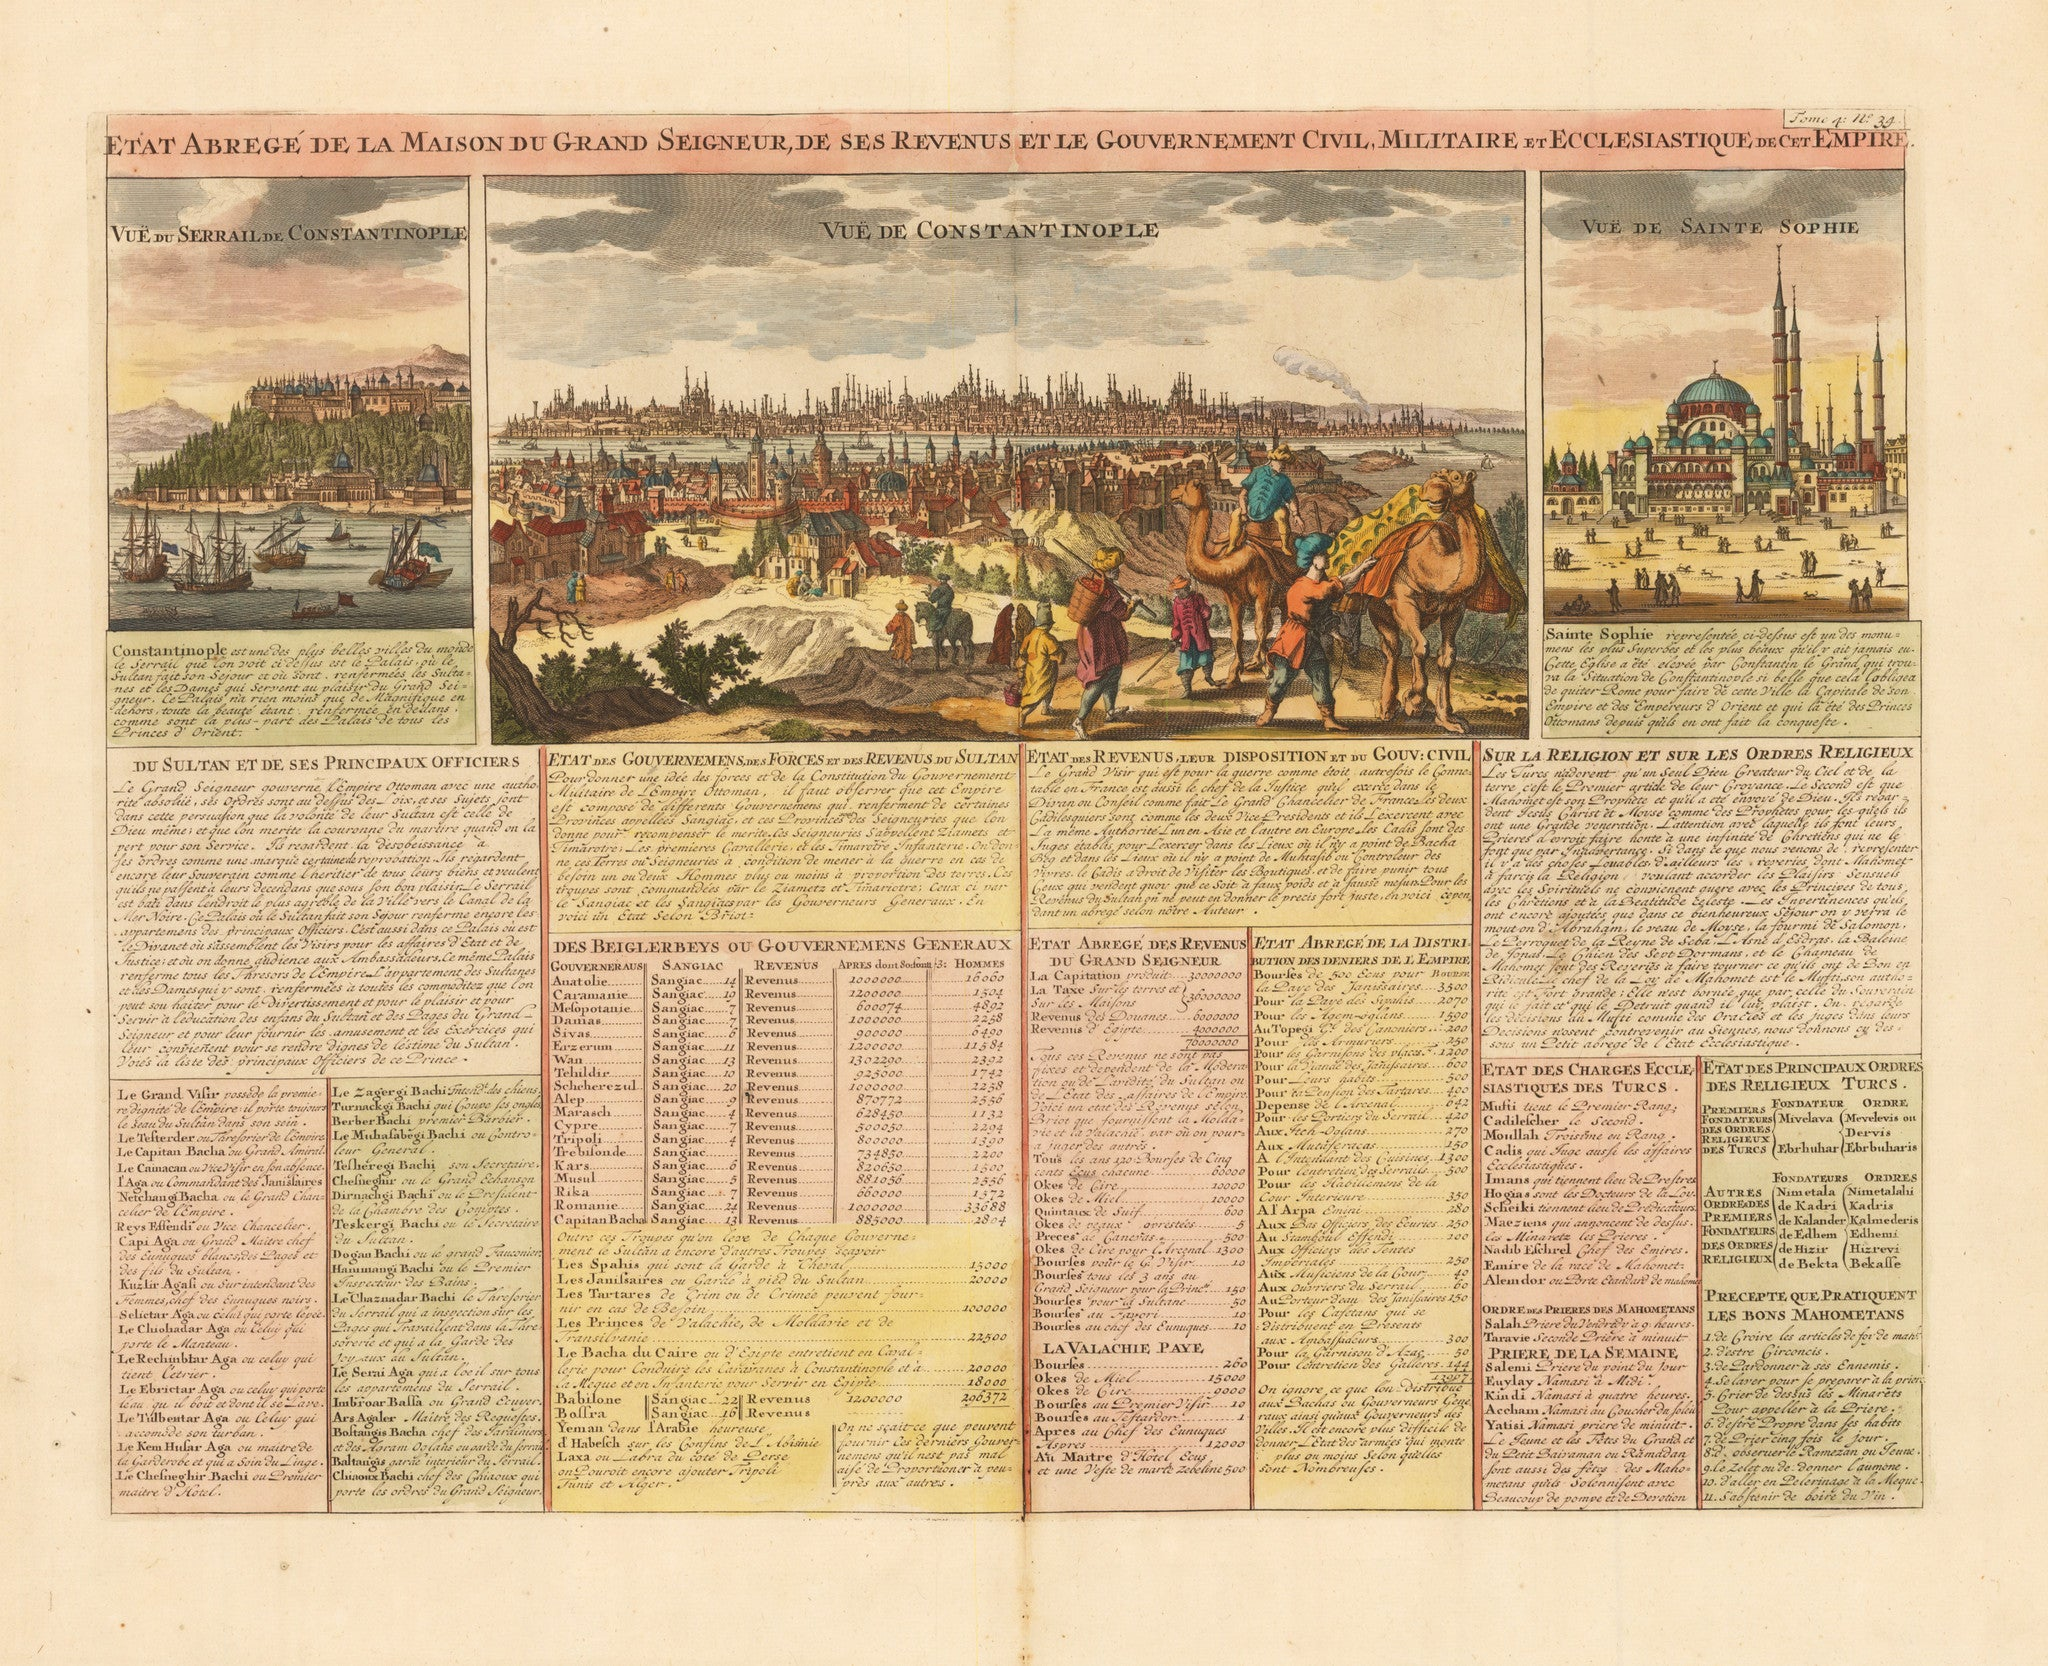 Etat Abrege de la Maison du Grand Seigneur, [Views of Constantinople] By: Chatelain Date: 1710 (Published) Paris Size: 13.5 x 17.5 inches - Antique, Istanbul